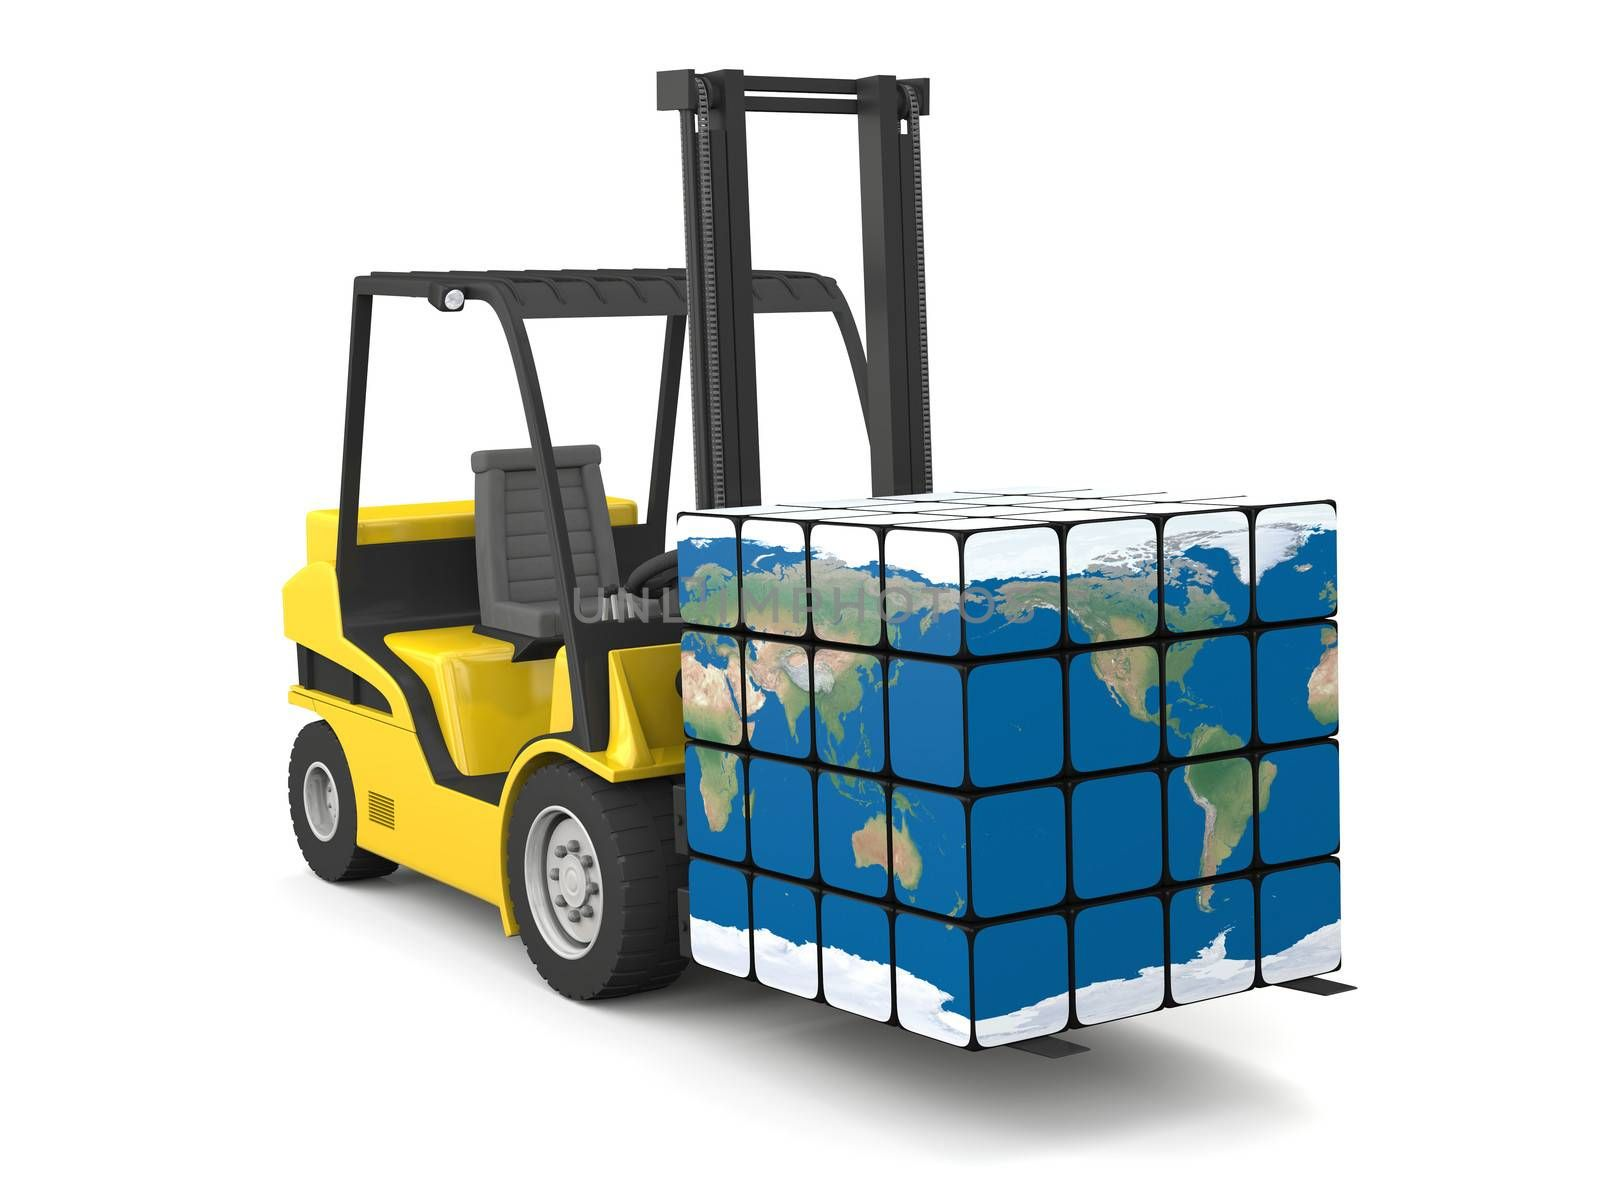 Concept of global transportation, modern yellow forklift carrying planet Earth in form of cube, isolated on white background. Elements of this image furnished by NASA.